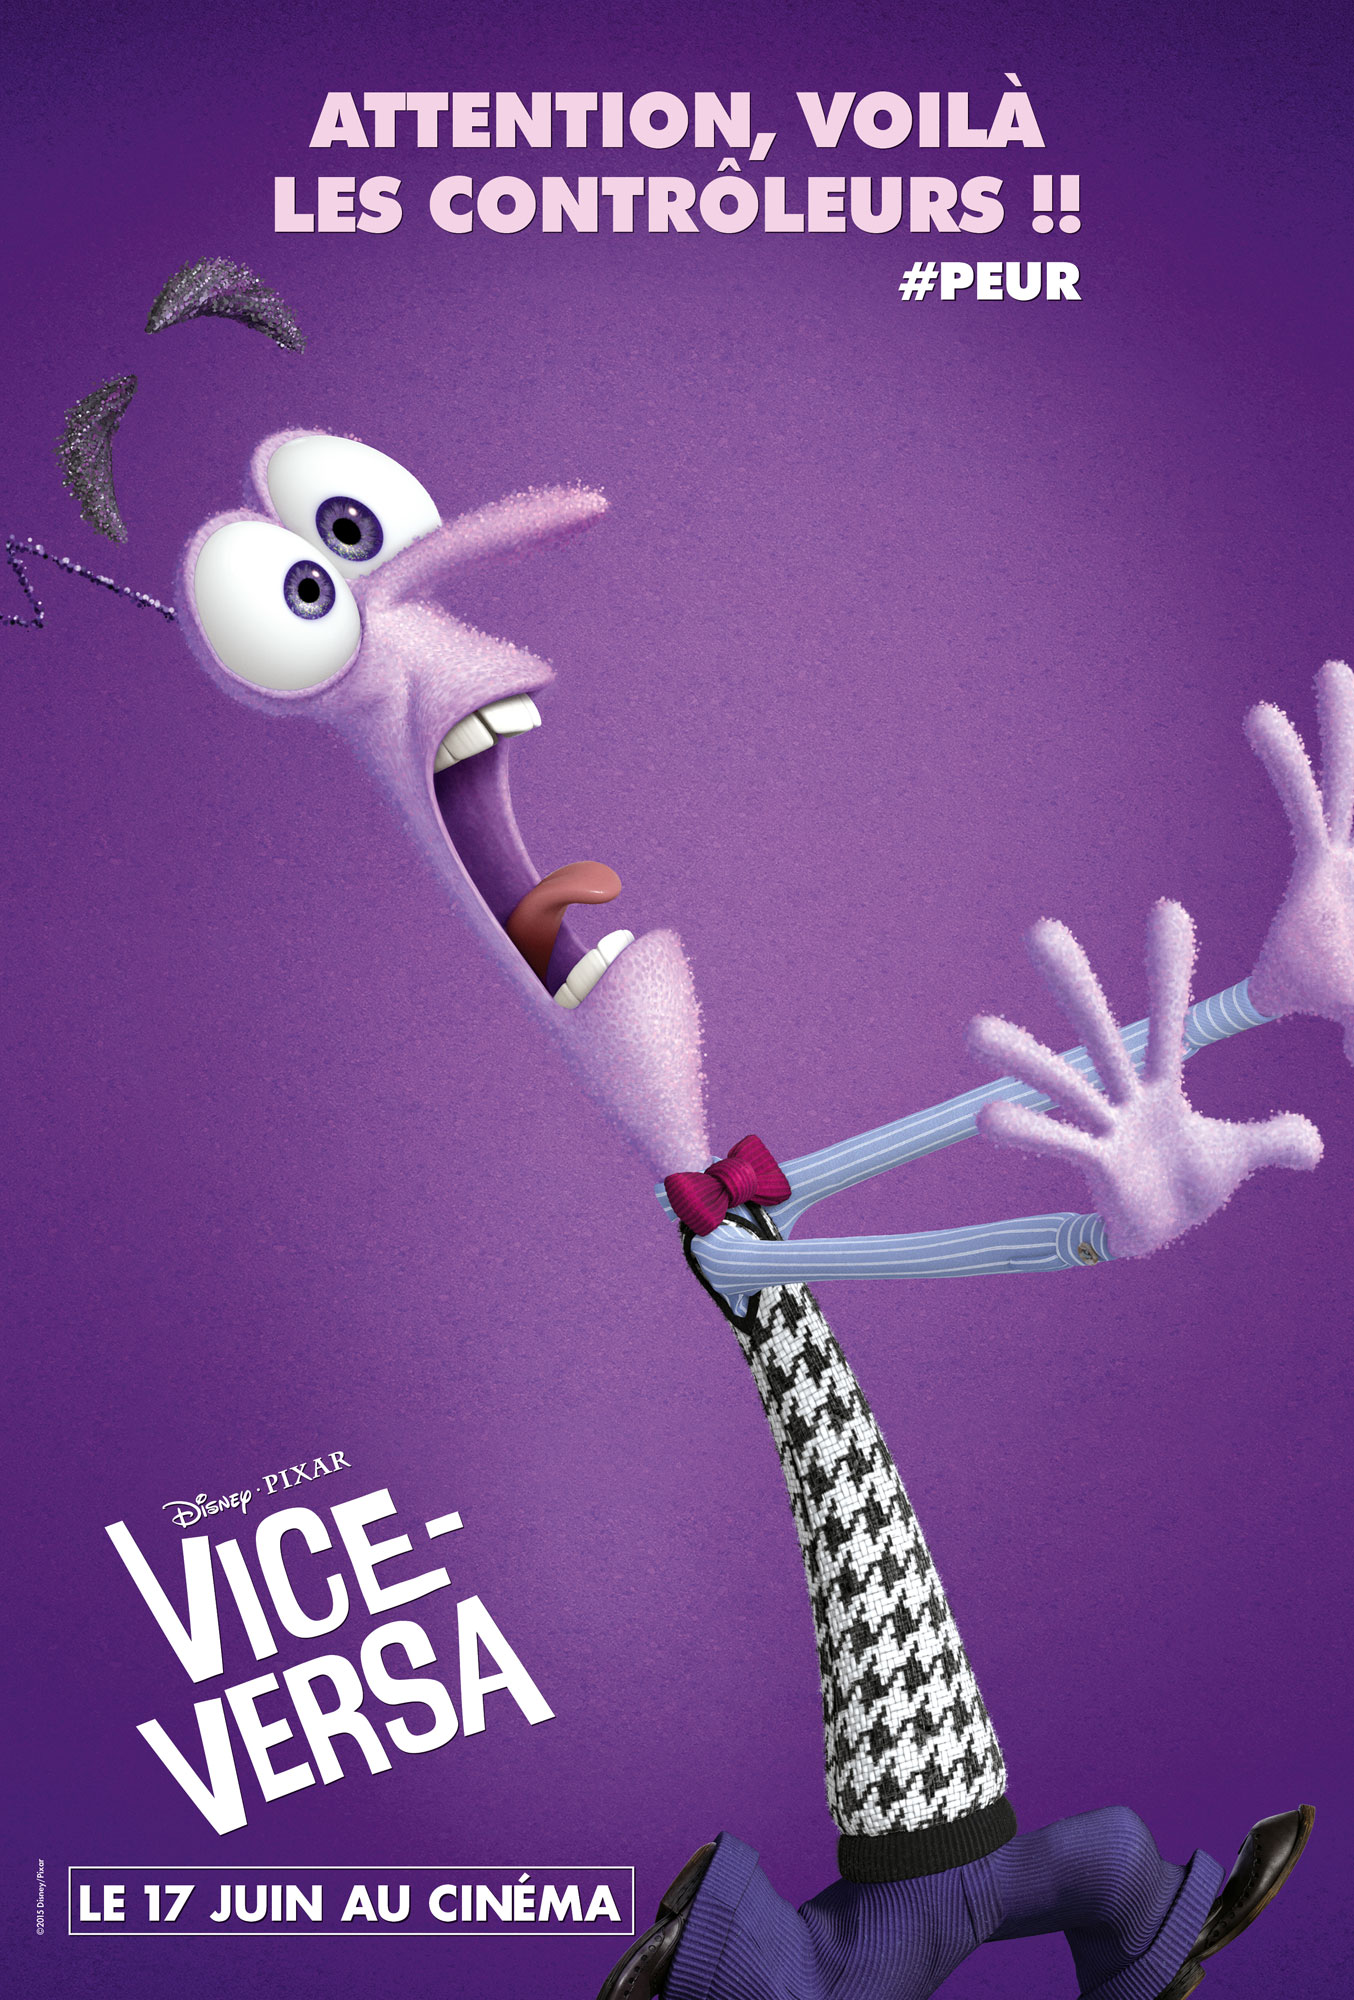 vice versa affiche poster pixar disney inside out train sncf metro gare